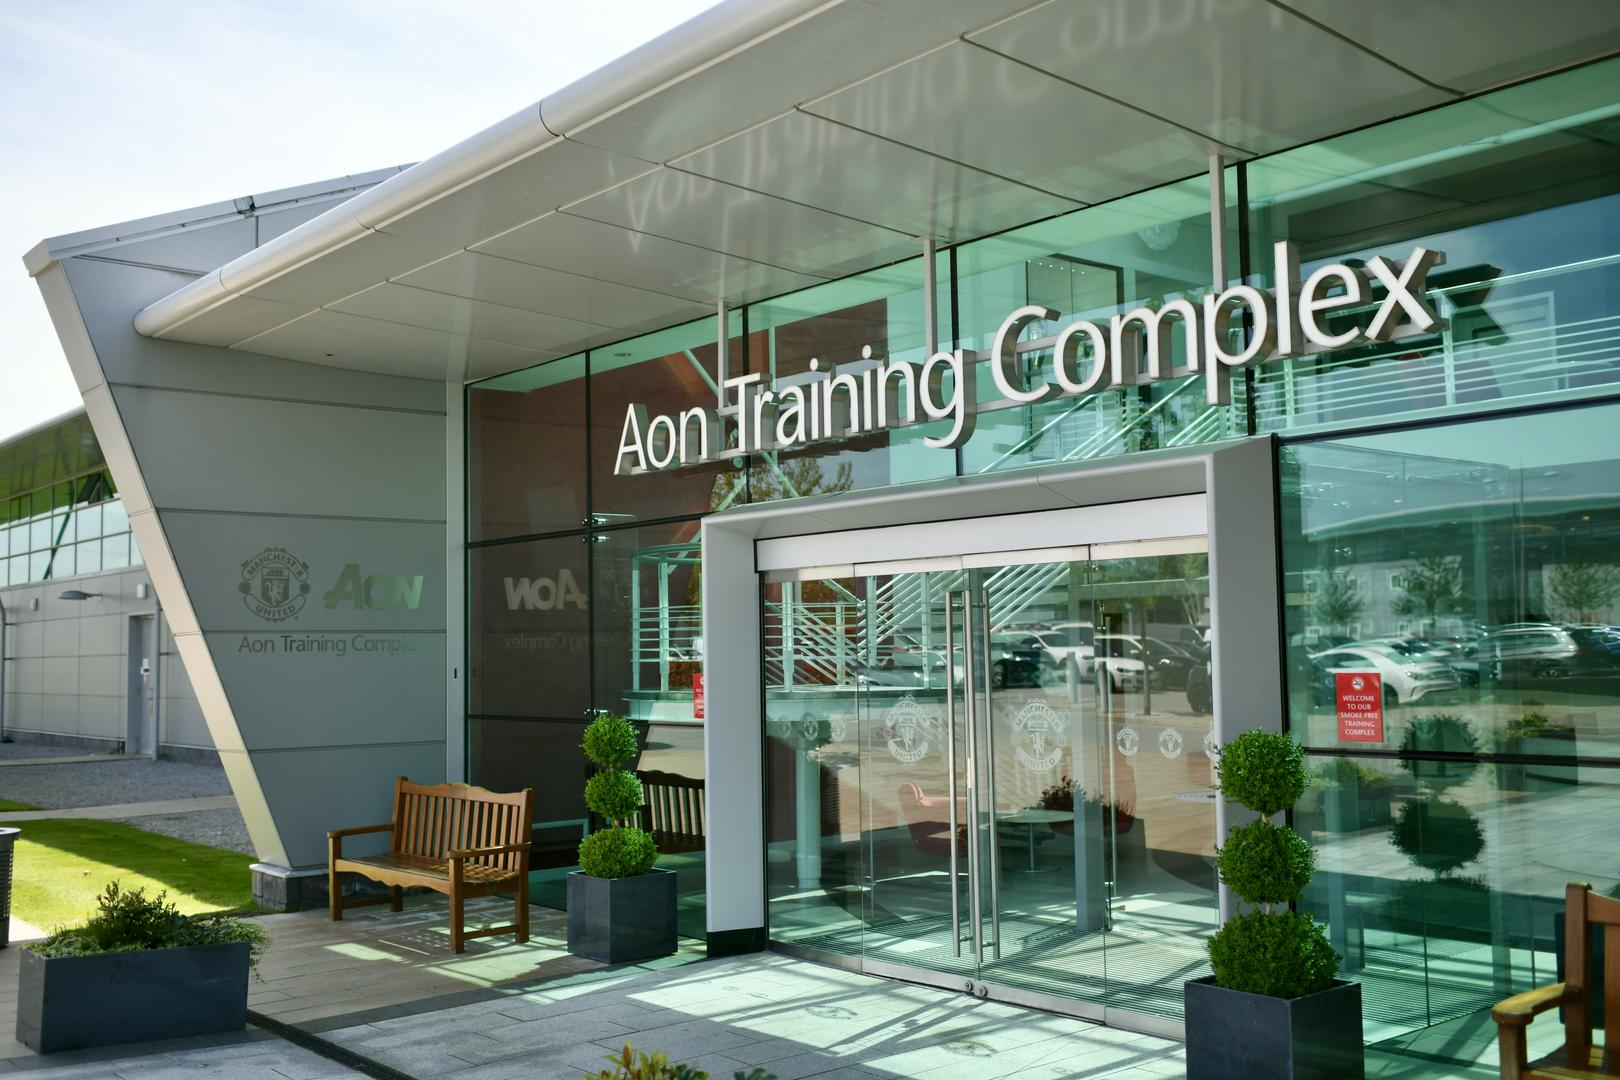 El Aon Training Complex en Carrington.